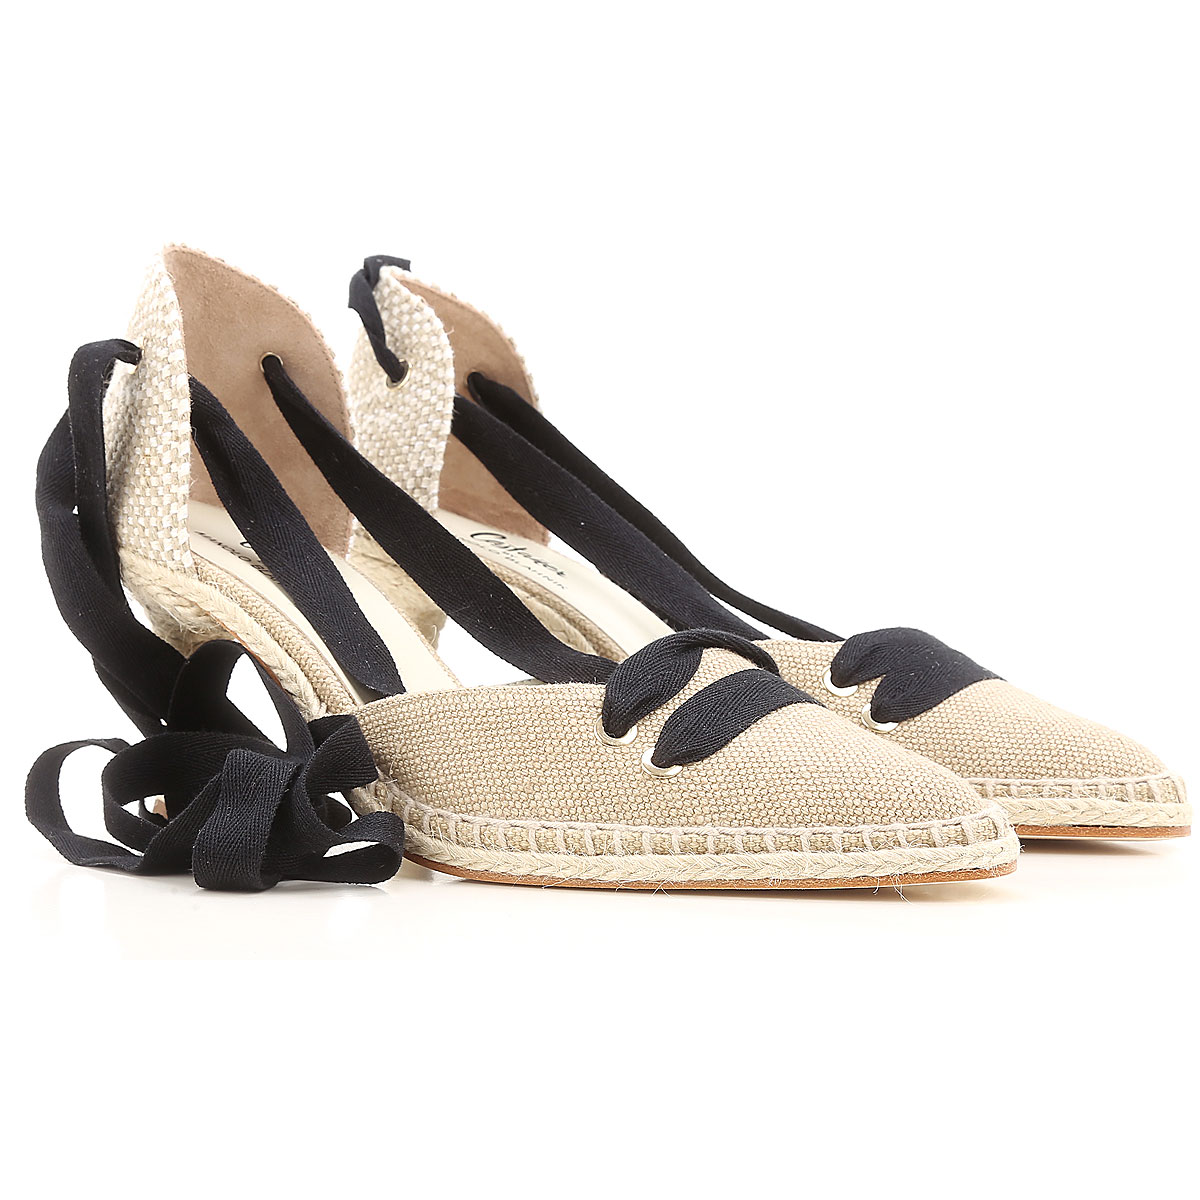 Castaner Sandals for Women in Outlet By Manolo Blahnik USA - GOOFASH